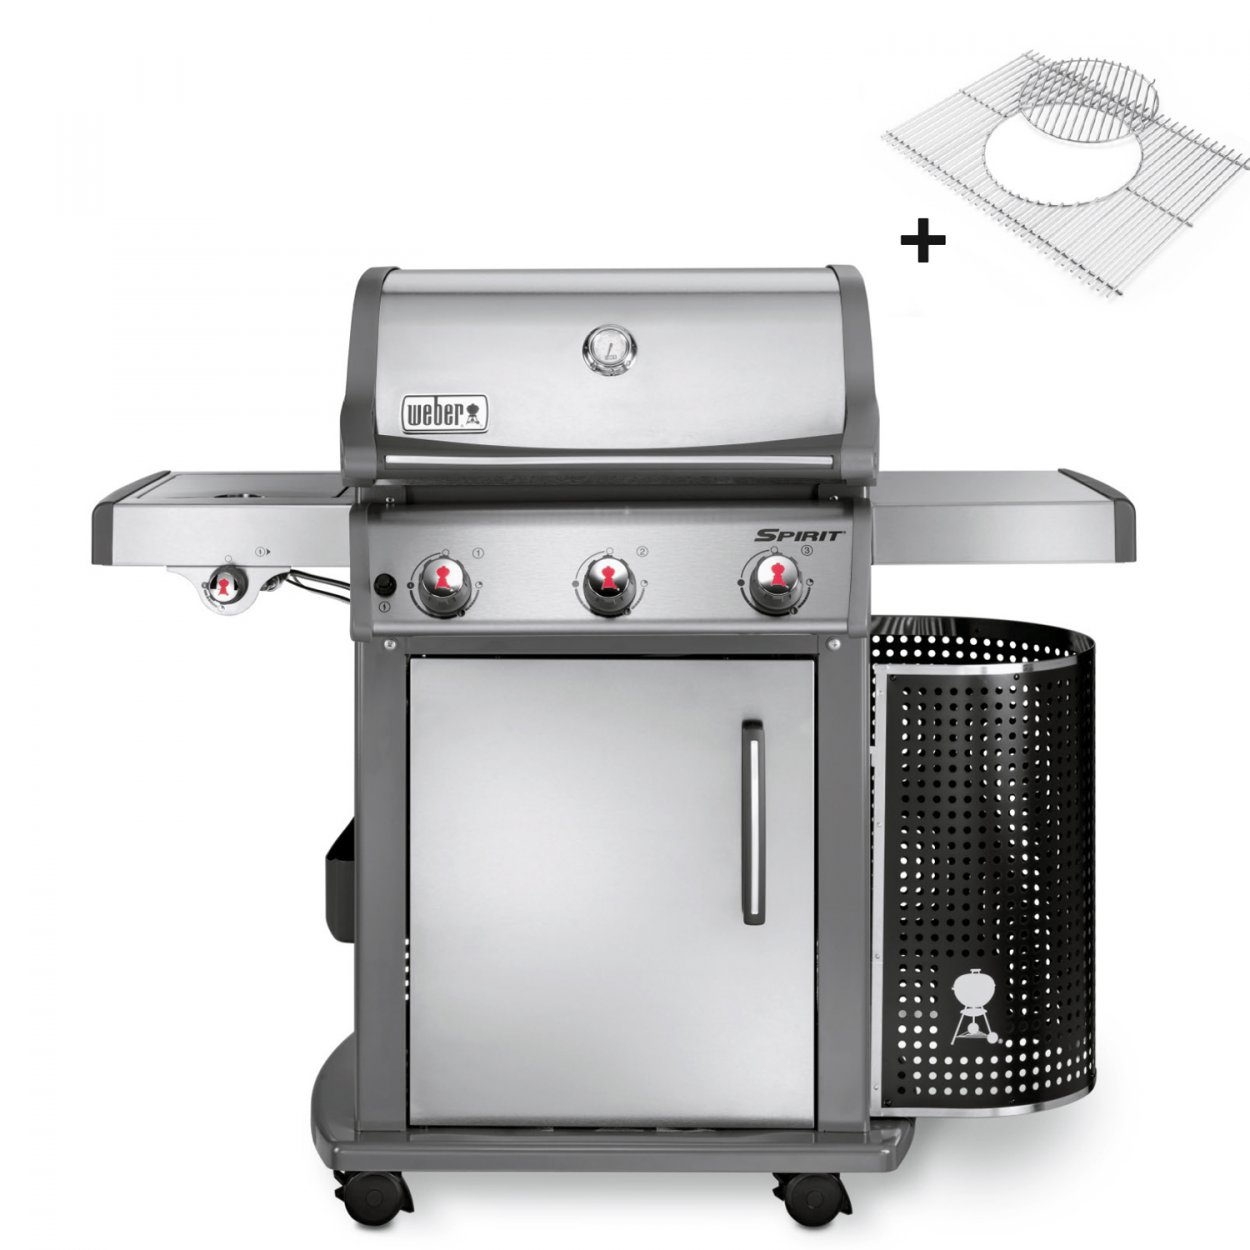 weber grill kaufen weber spirit e 330 premium edelstahl weber spirit s 330 weber e 310 grill. Black Bedroom Furniture Sets. Home Design Ideas